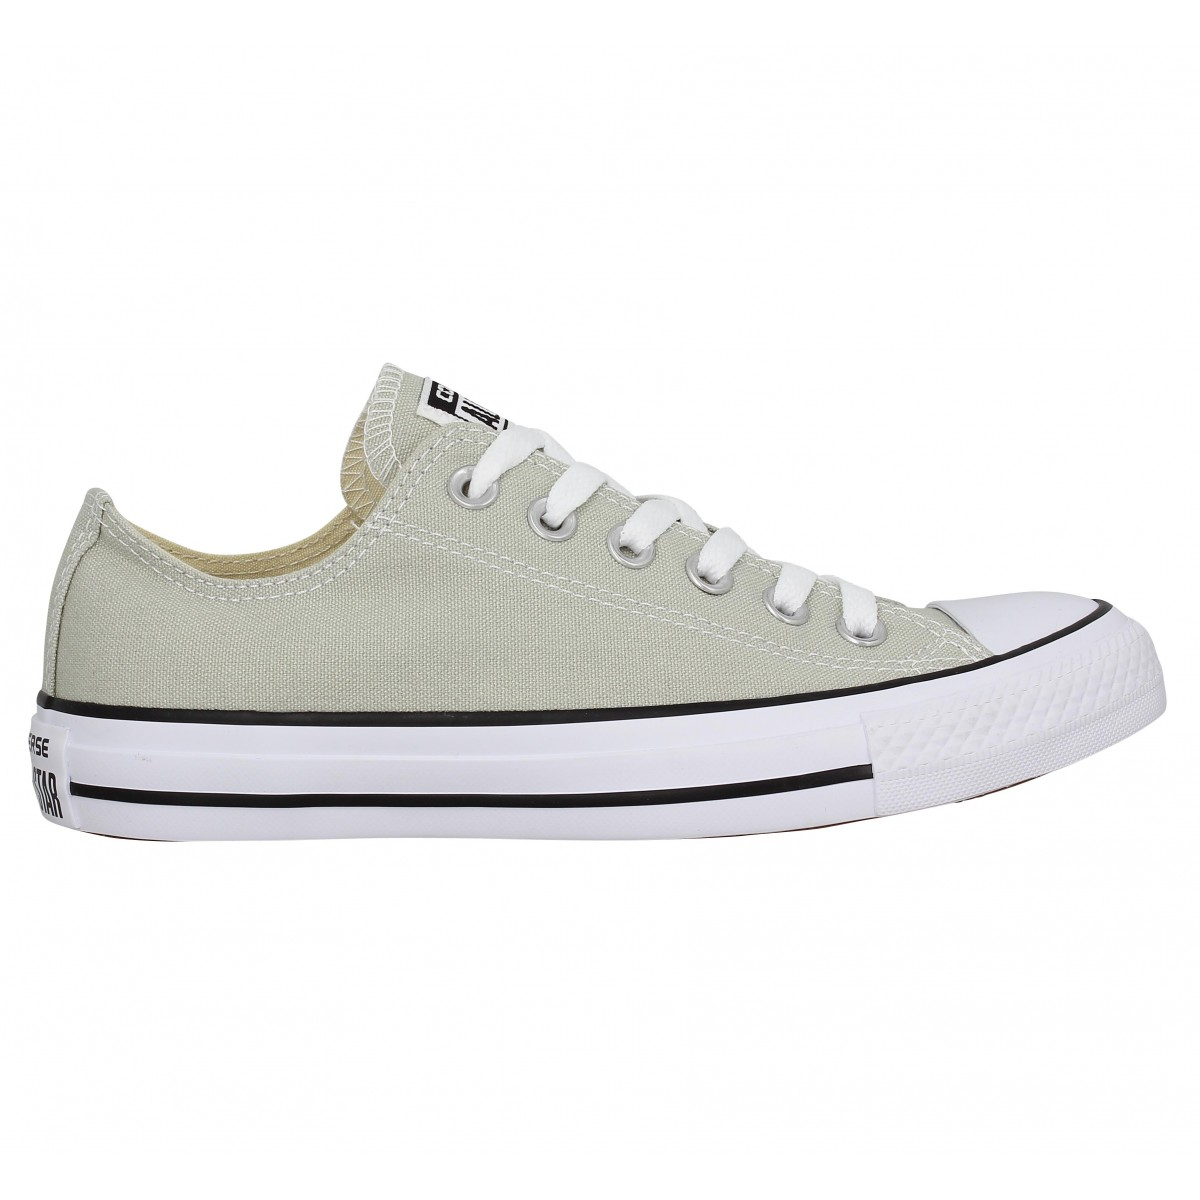 CONVERSE Chuck Taylor All Star toile Femme Light Surplus